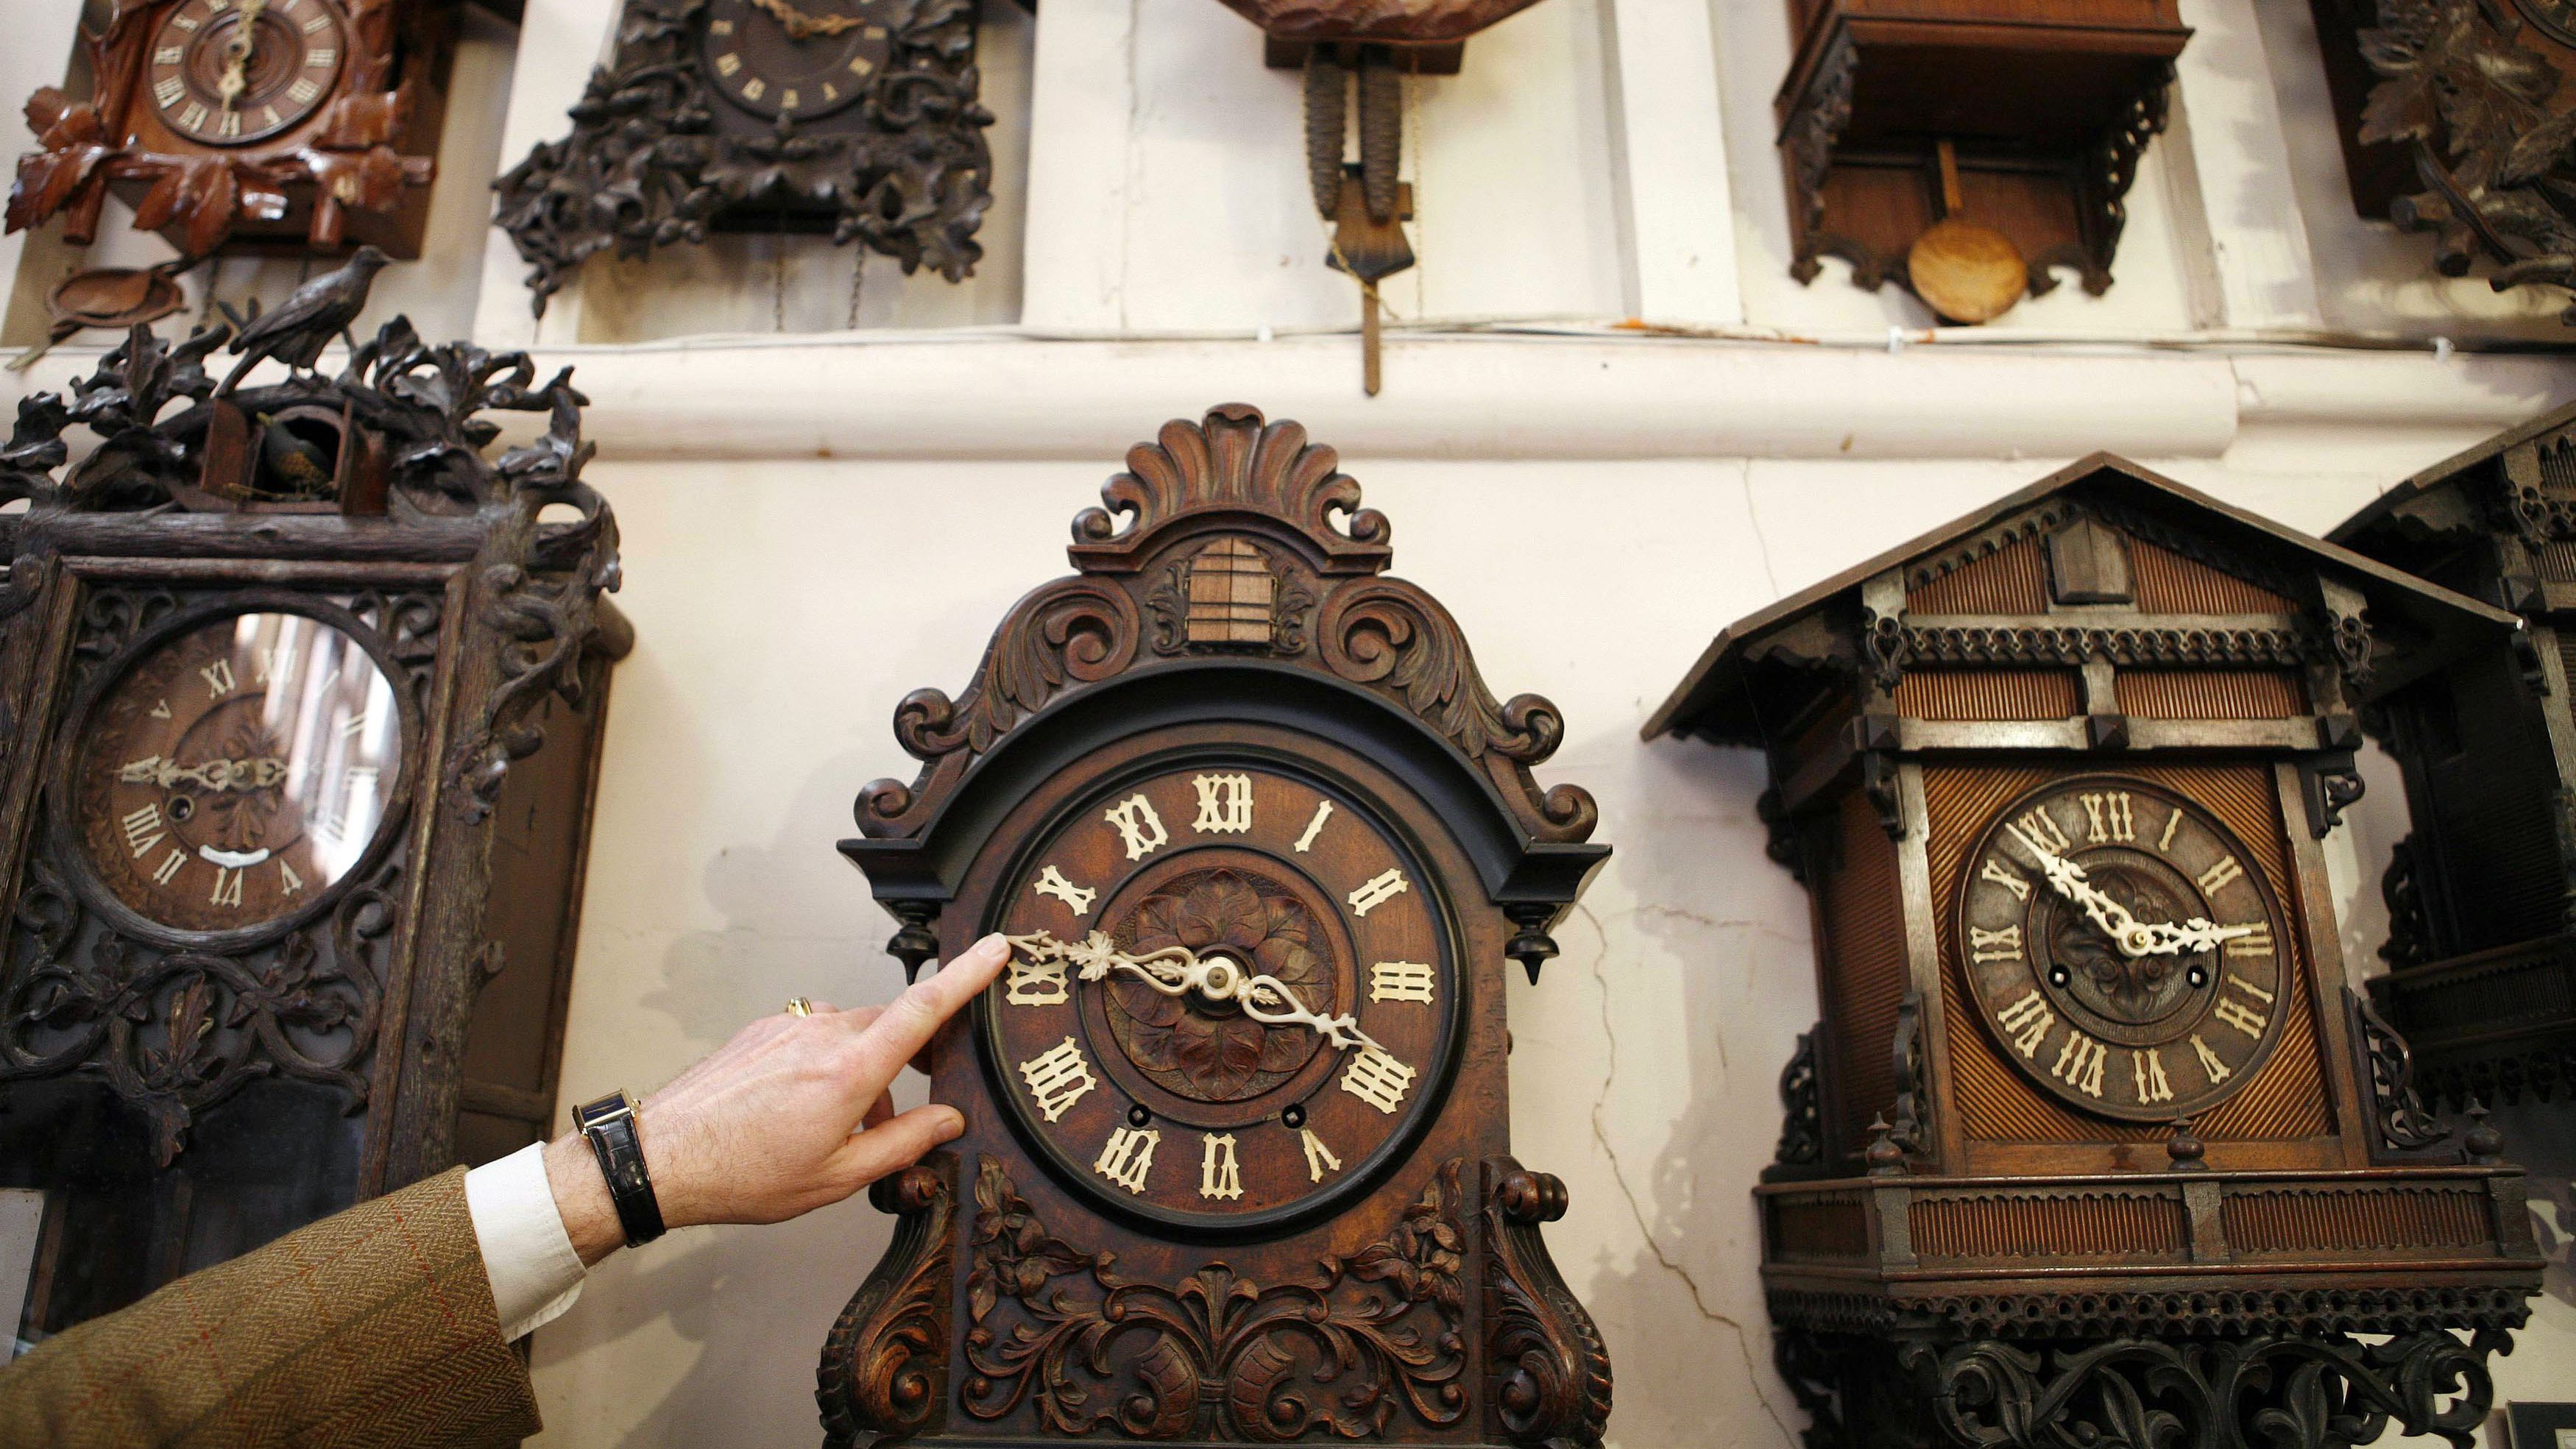 Adjusting the time on a cuckoo clock.